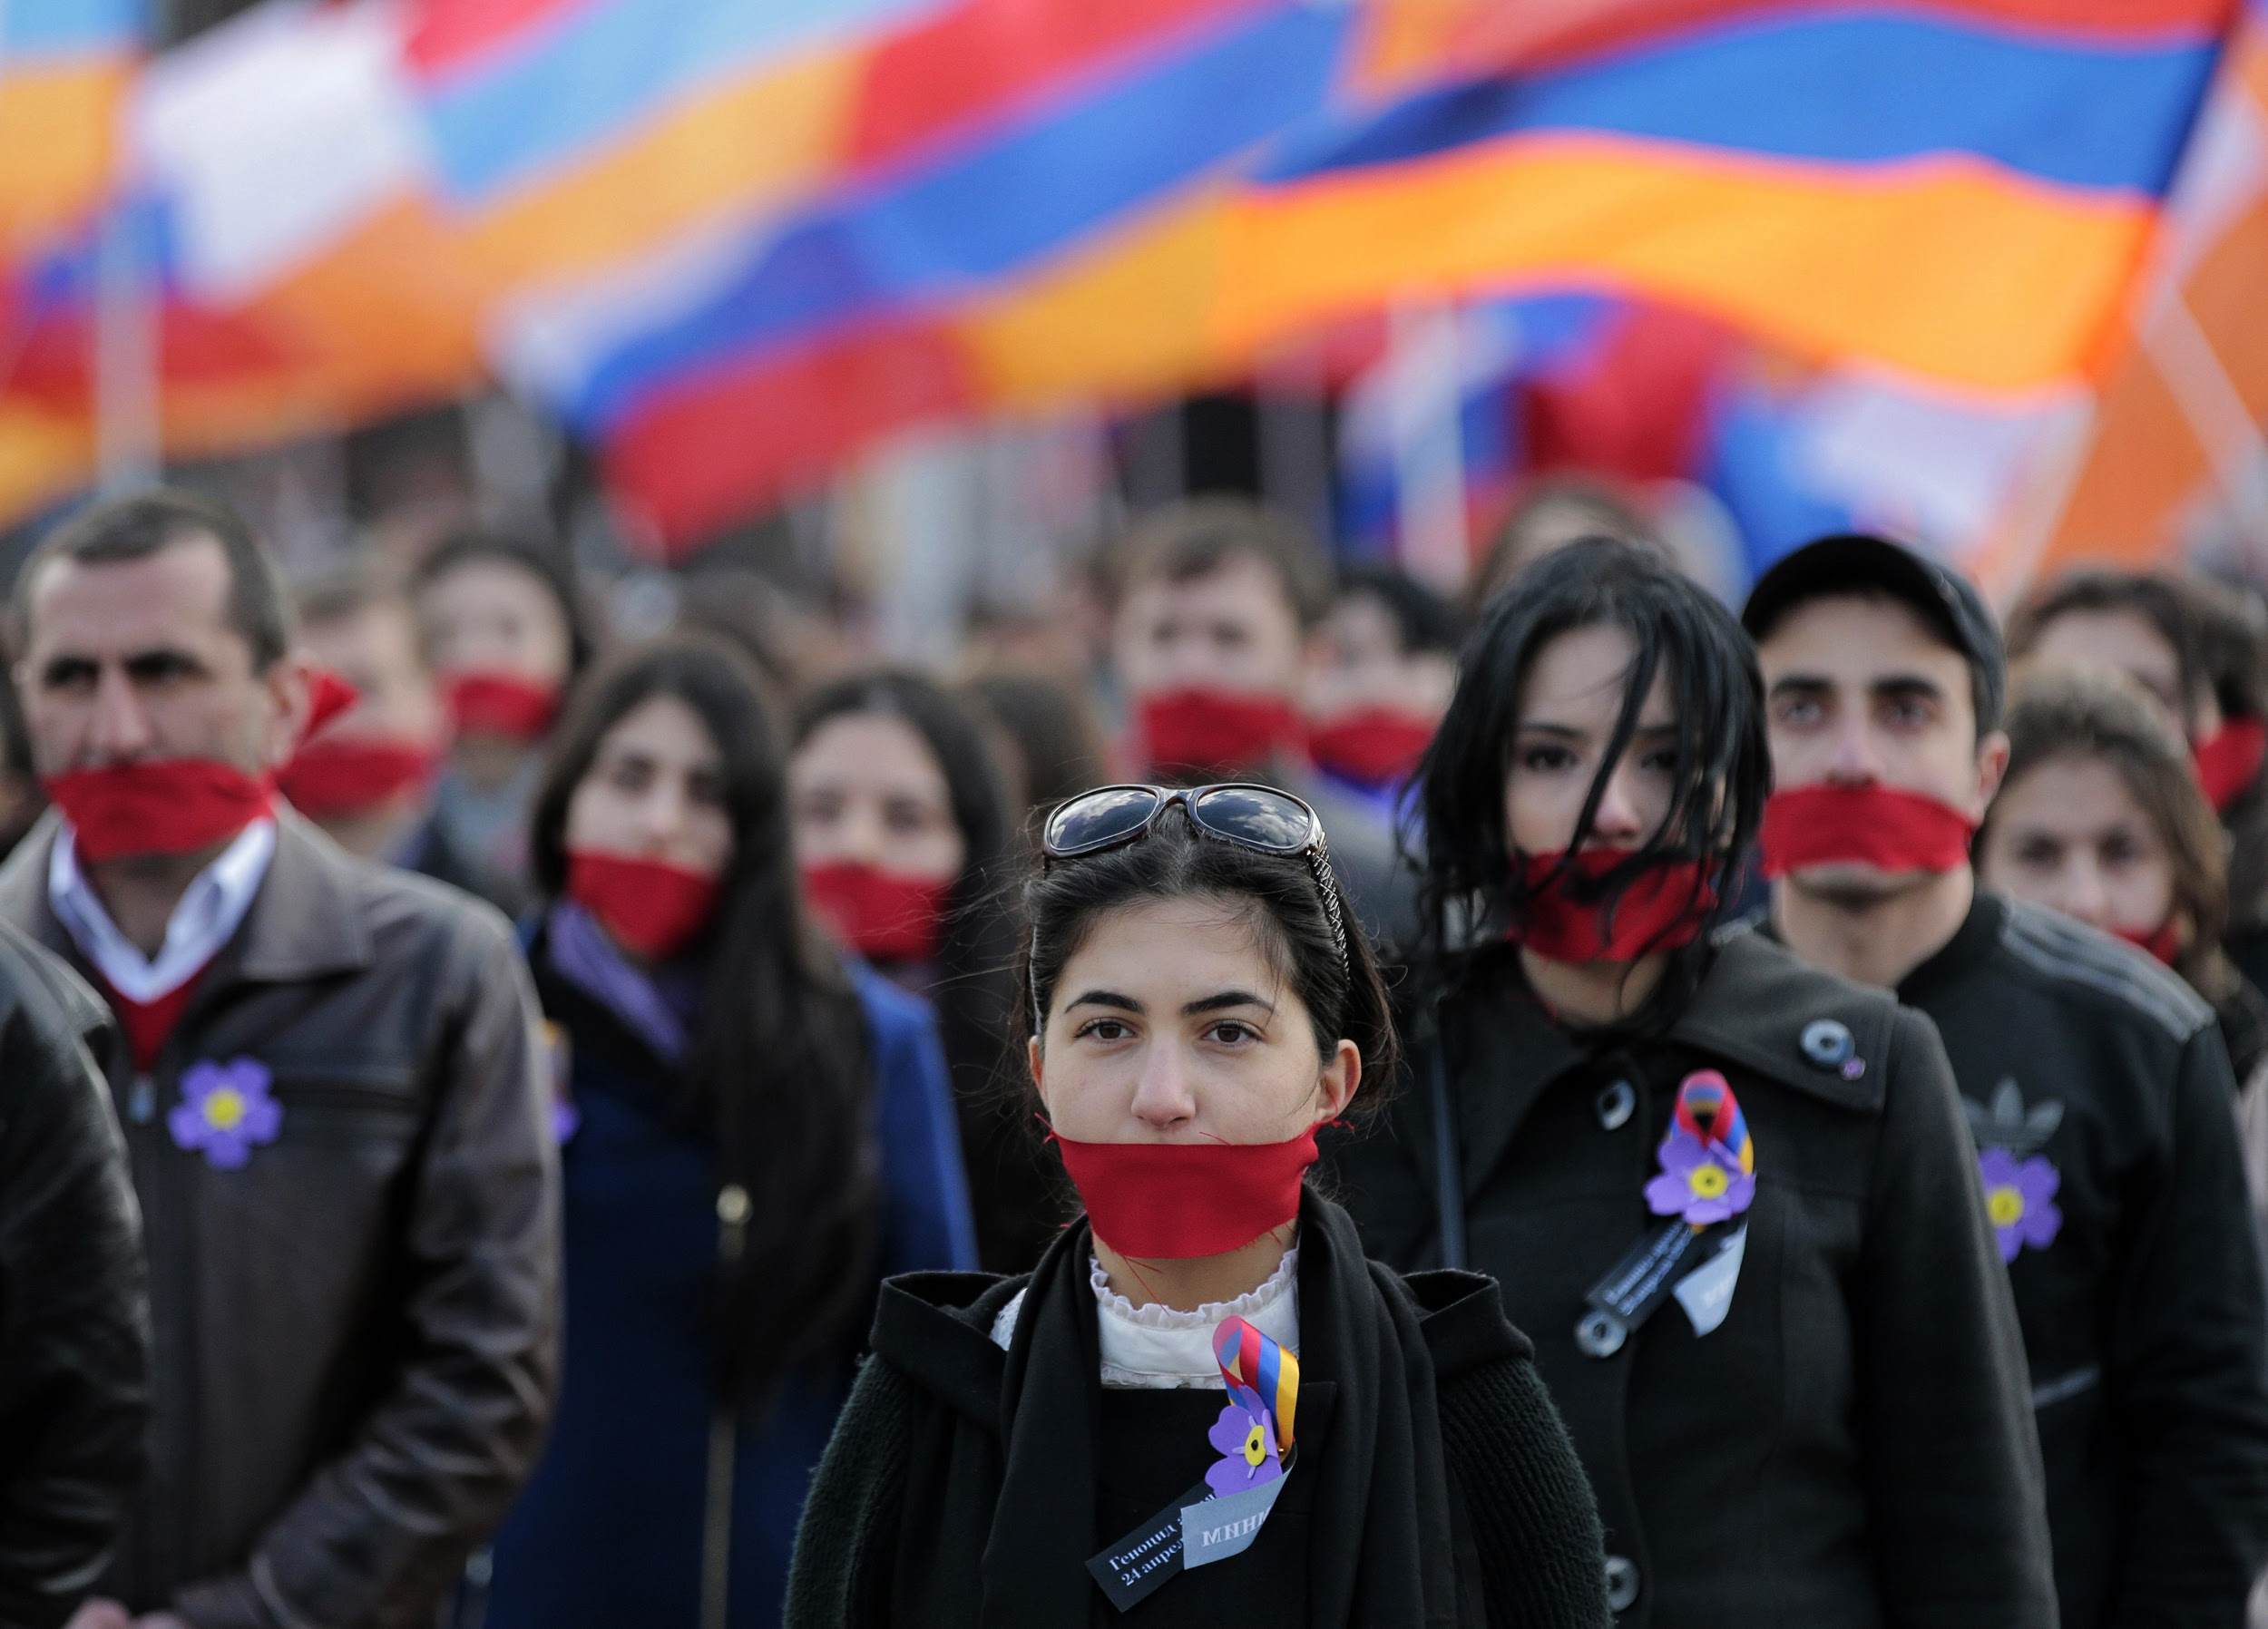 http://media3.s-nbcnews.com/i/MSNBC/Components/Slideshows/_production/ss-150424-armenian-genocide/ss-150424-arminian-genocide-03.jpg